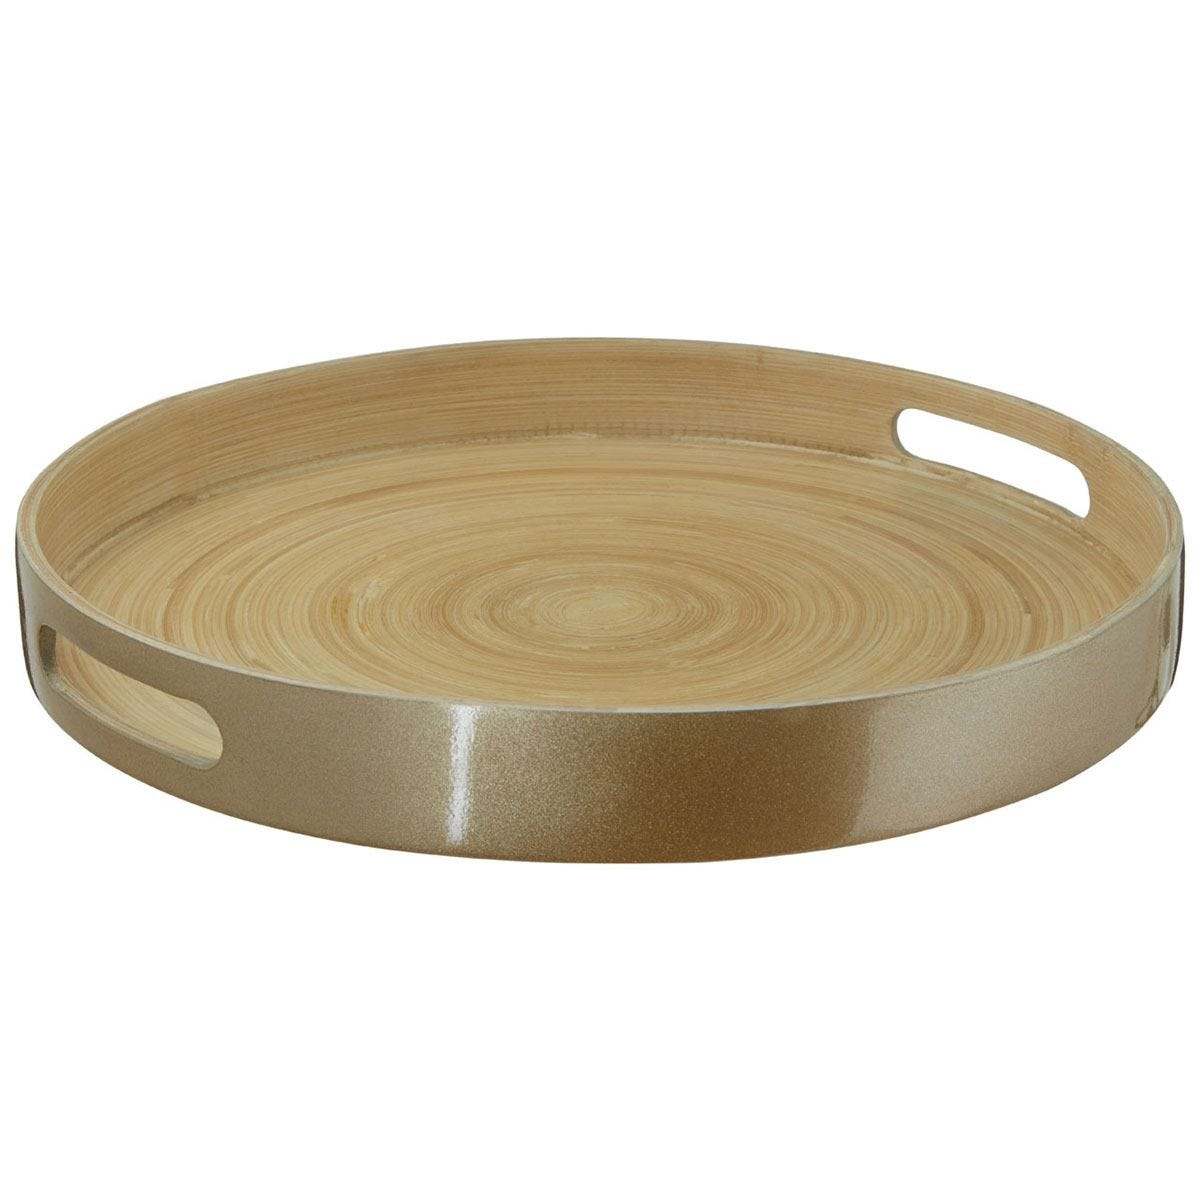 Premier Housewares Kyoto Large Tray - Gold